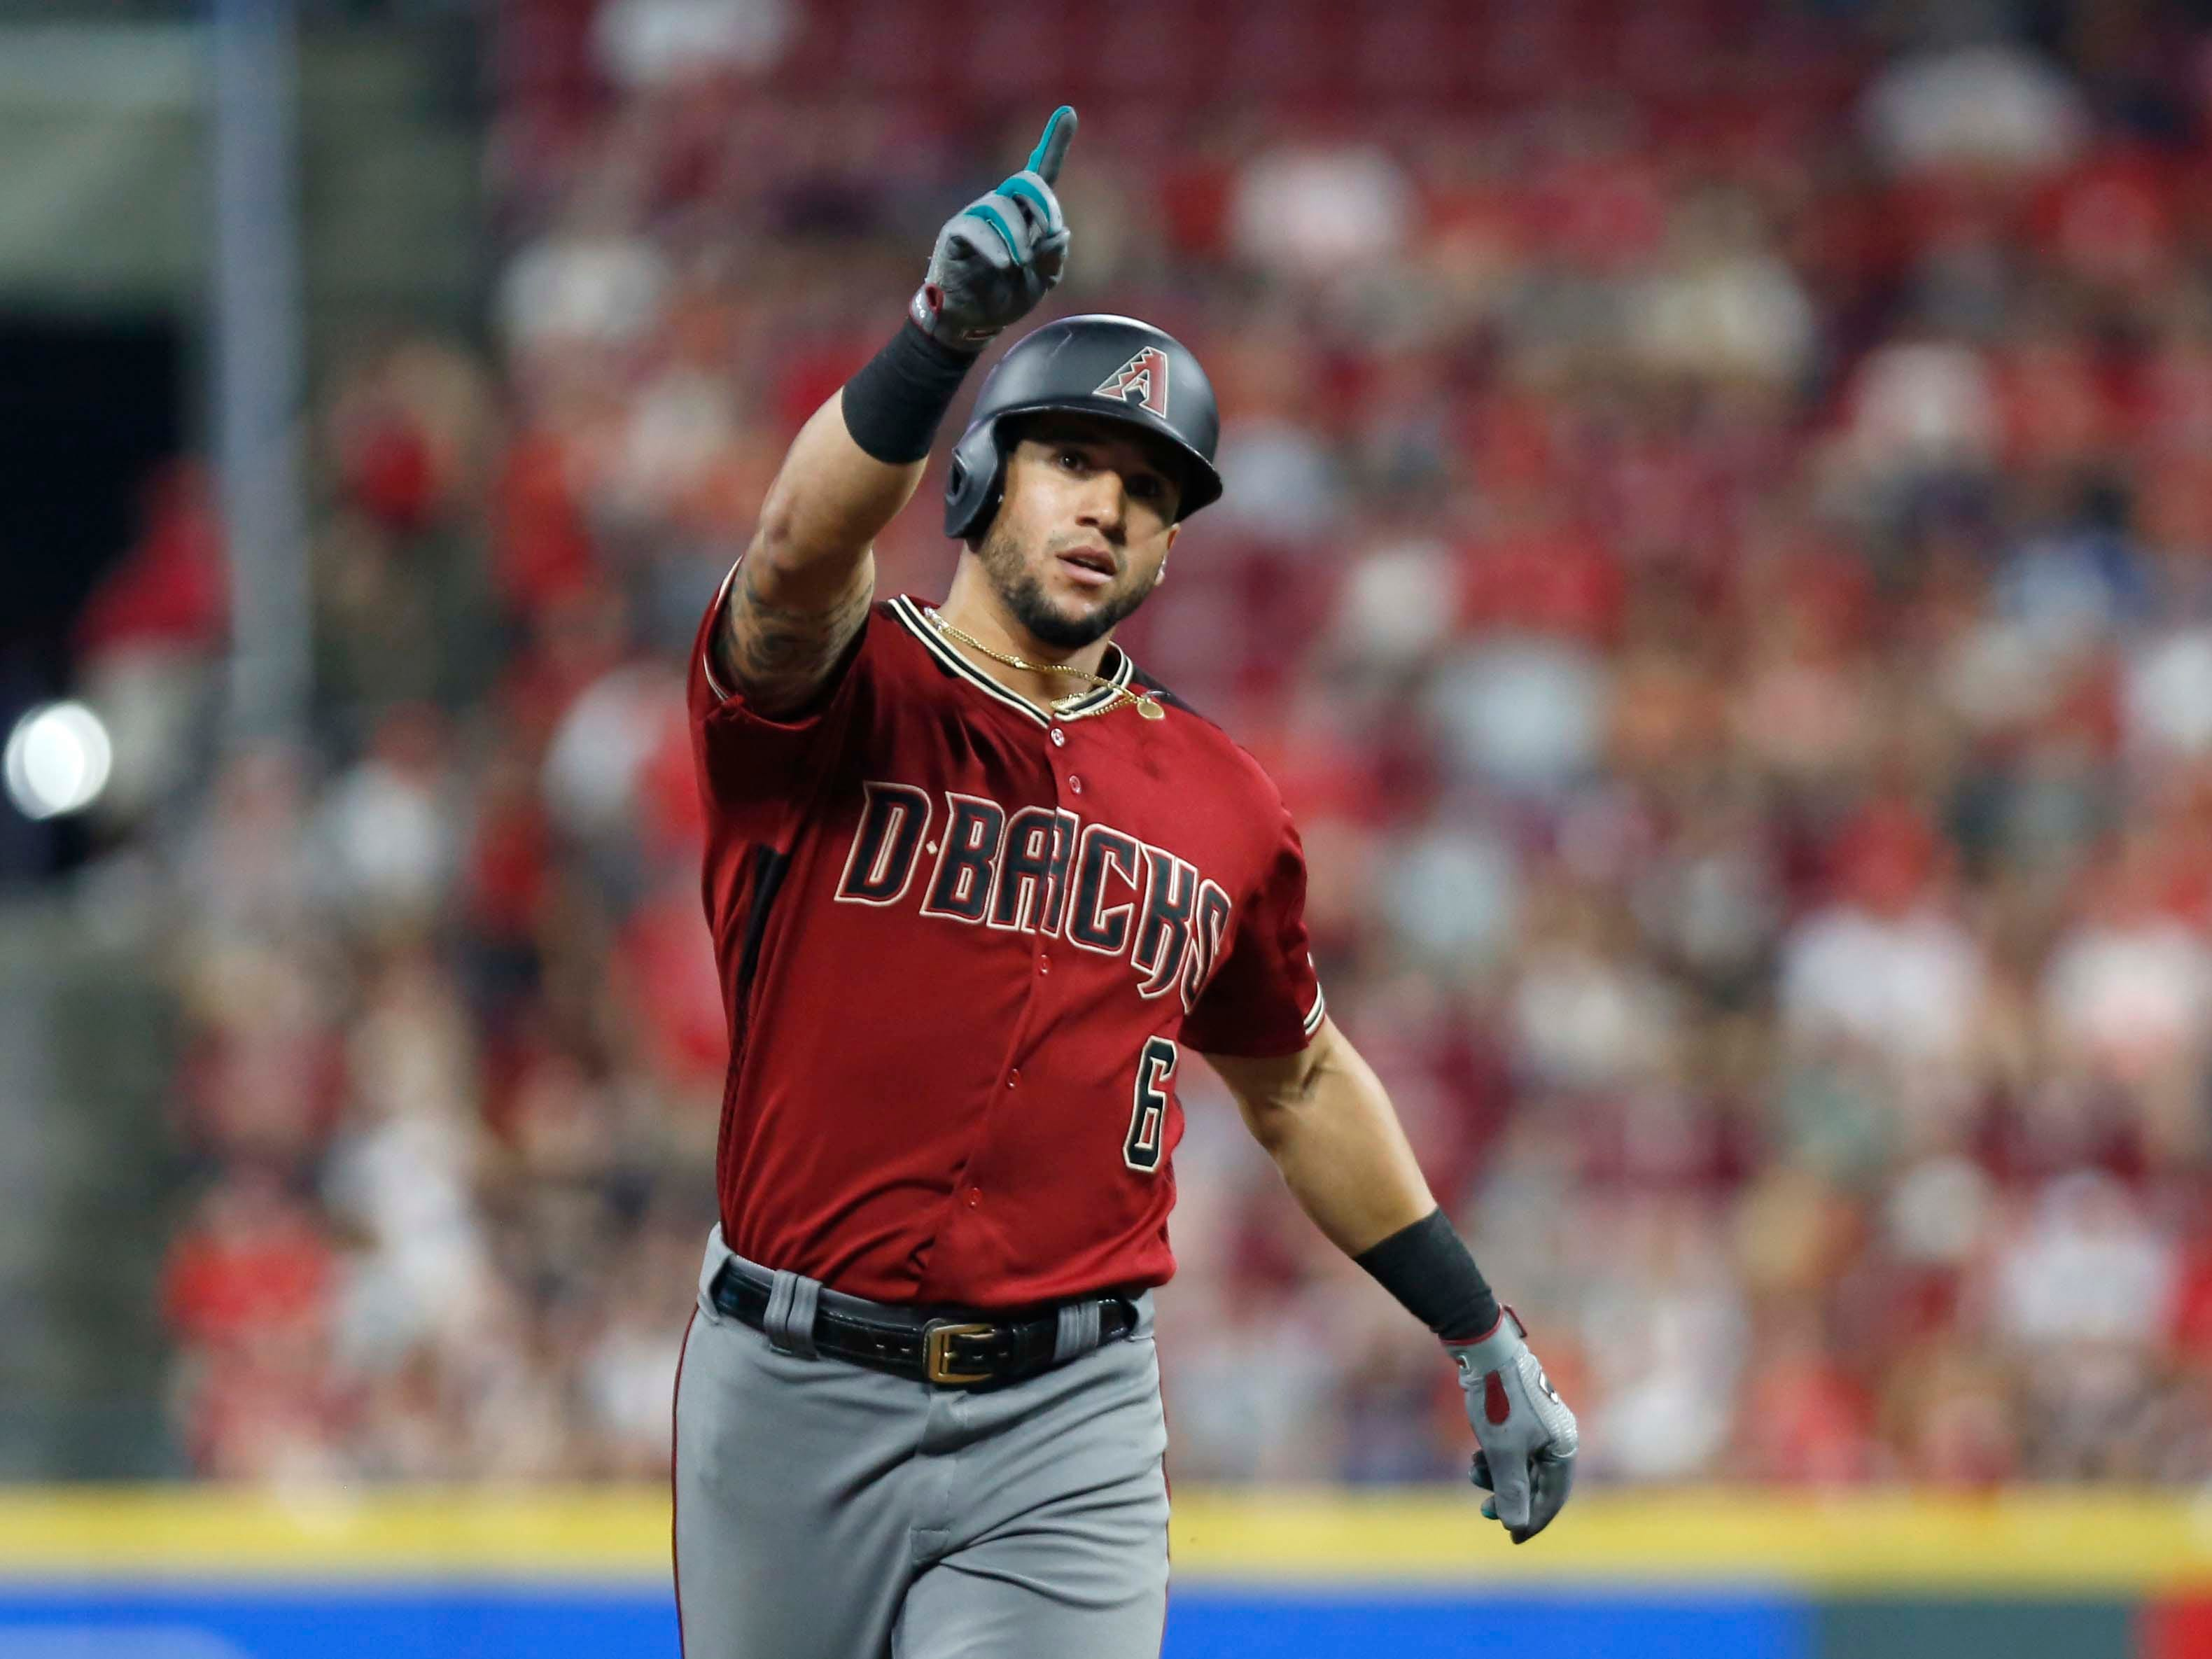 Aug 11, 2018; Cincinnati, OH, USA; Arizona Diamondbacks right fielder David Peralta (6) reacts as he rounds the bases after hitting a solo home run against the Cincinnati Reds during the eighth inning at Great American Ball Park. Mandatory Credit: David Kohl-USA TODAY Sports